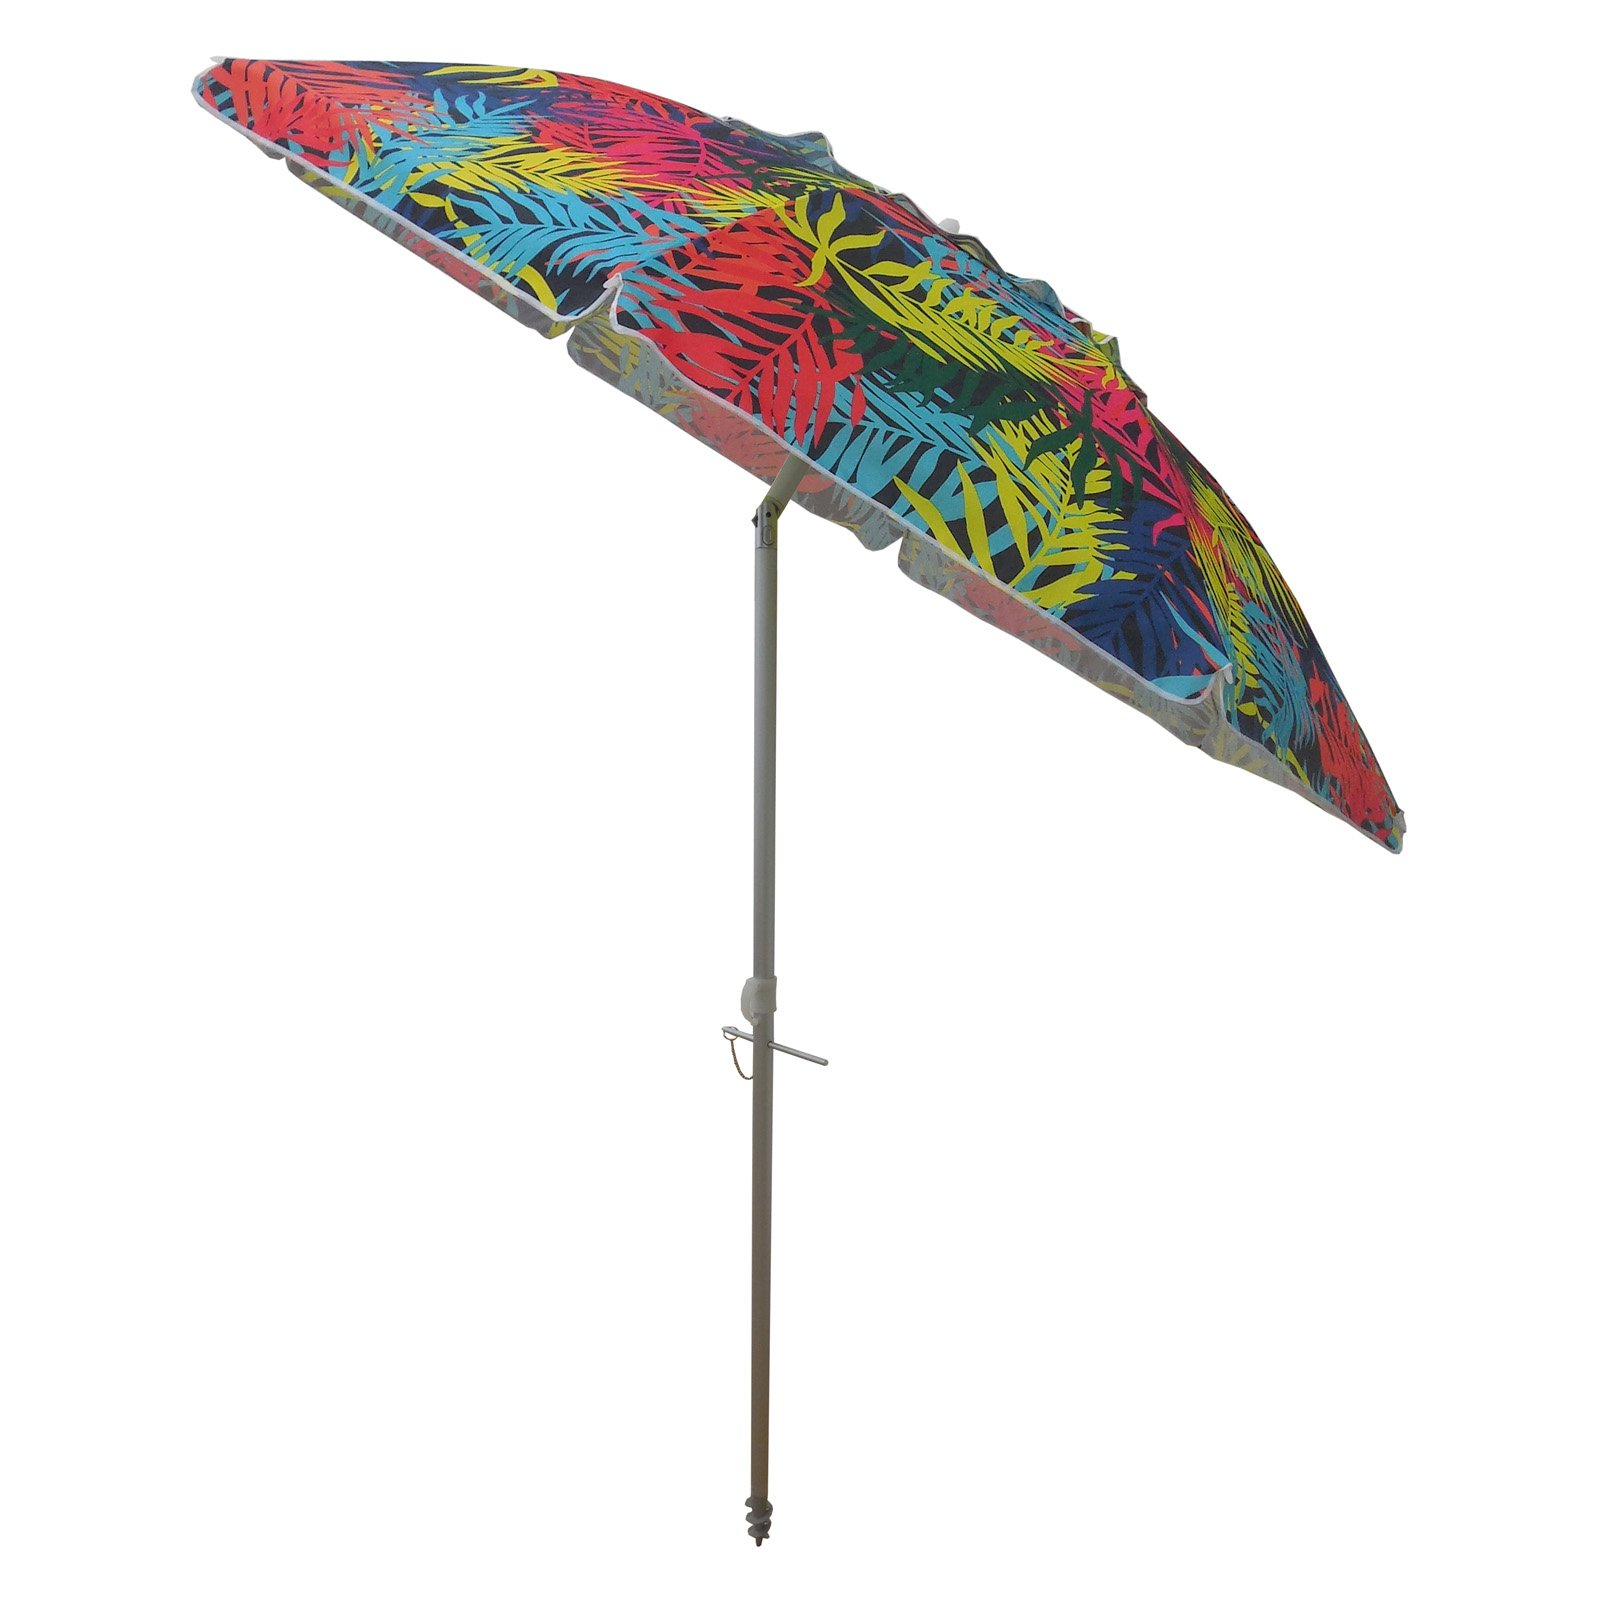 DestinationGear 7' Palms Beach Umbrella With Travel Bag